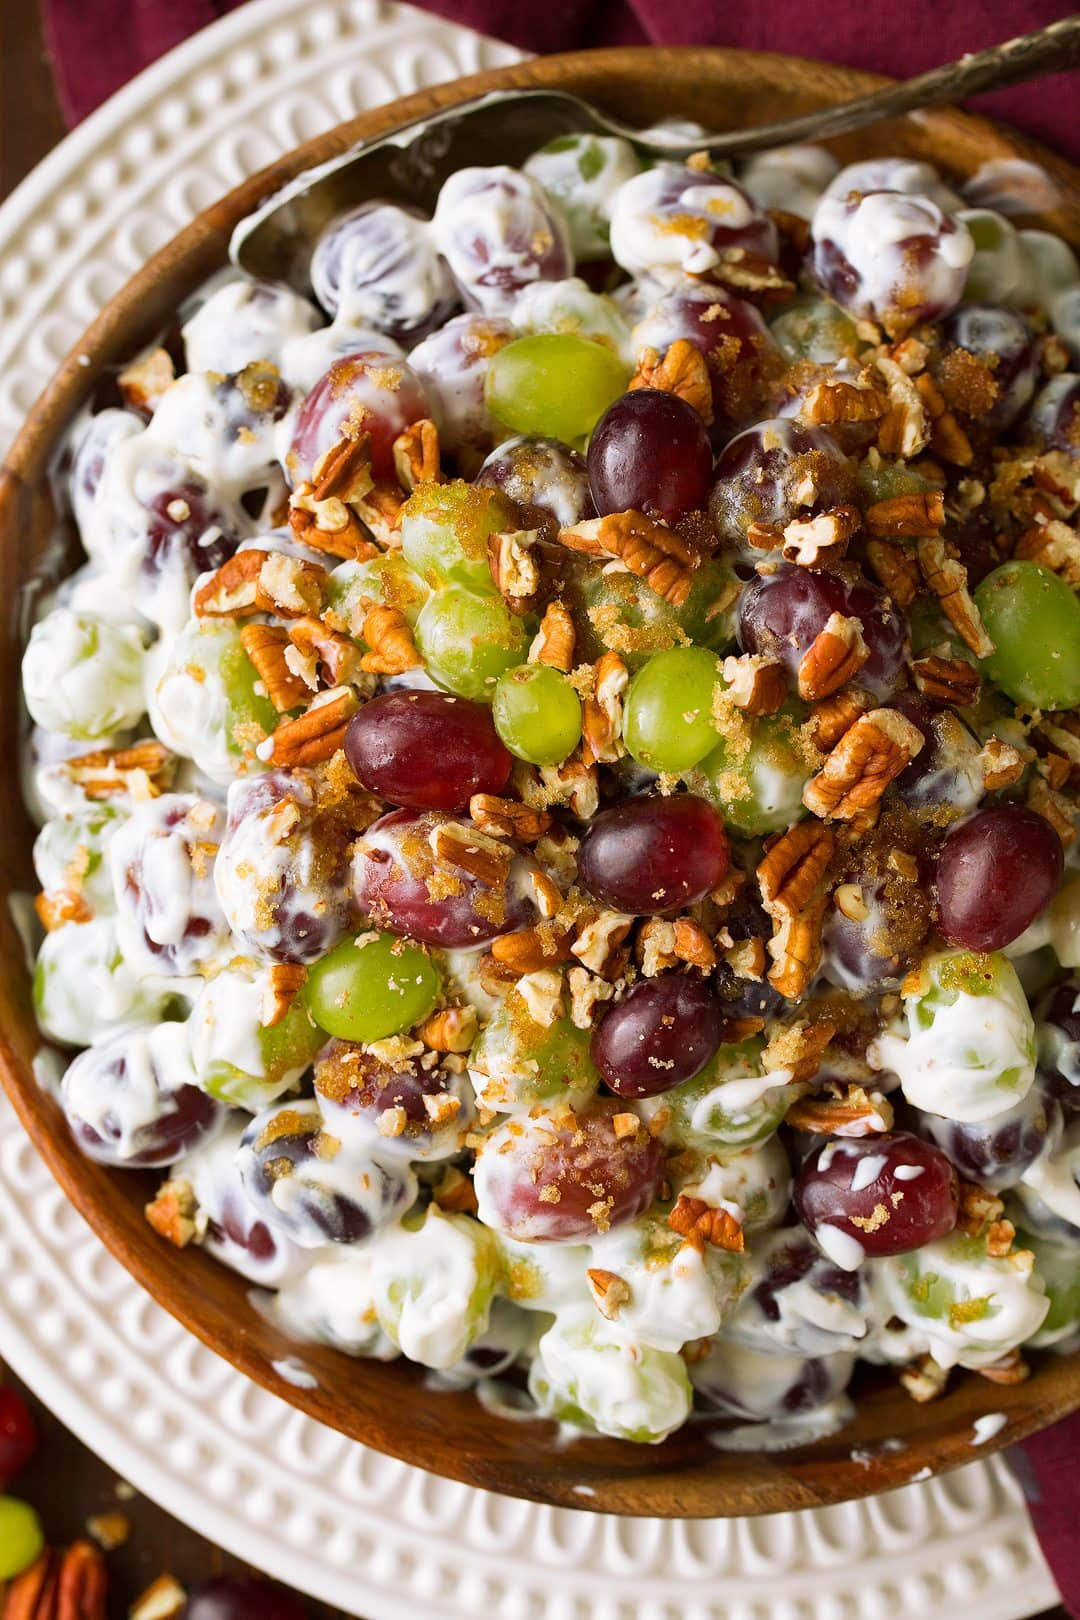 Overhead close up image of grape salad in a large wooden bowl.